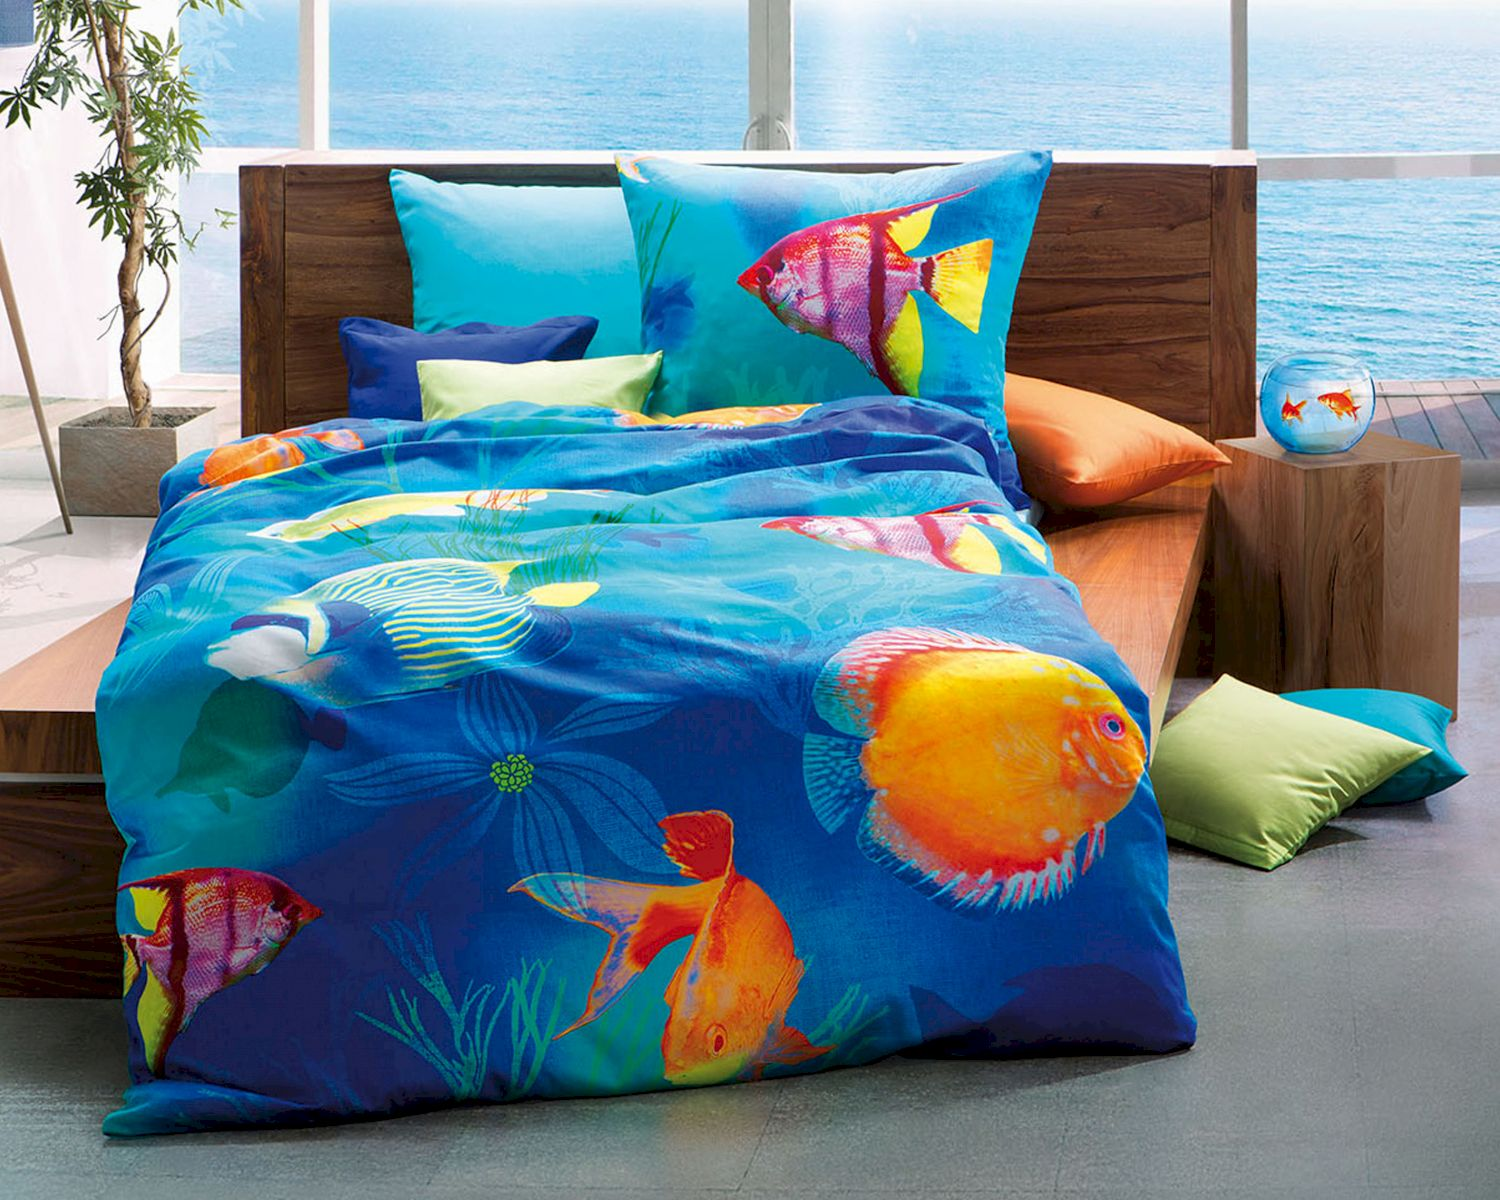 kaeppel mako bettw sche under the sea 558643. Black Bedroom Furniture Sets. Home Design Ideas